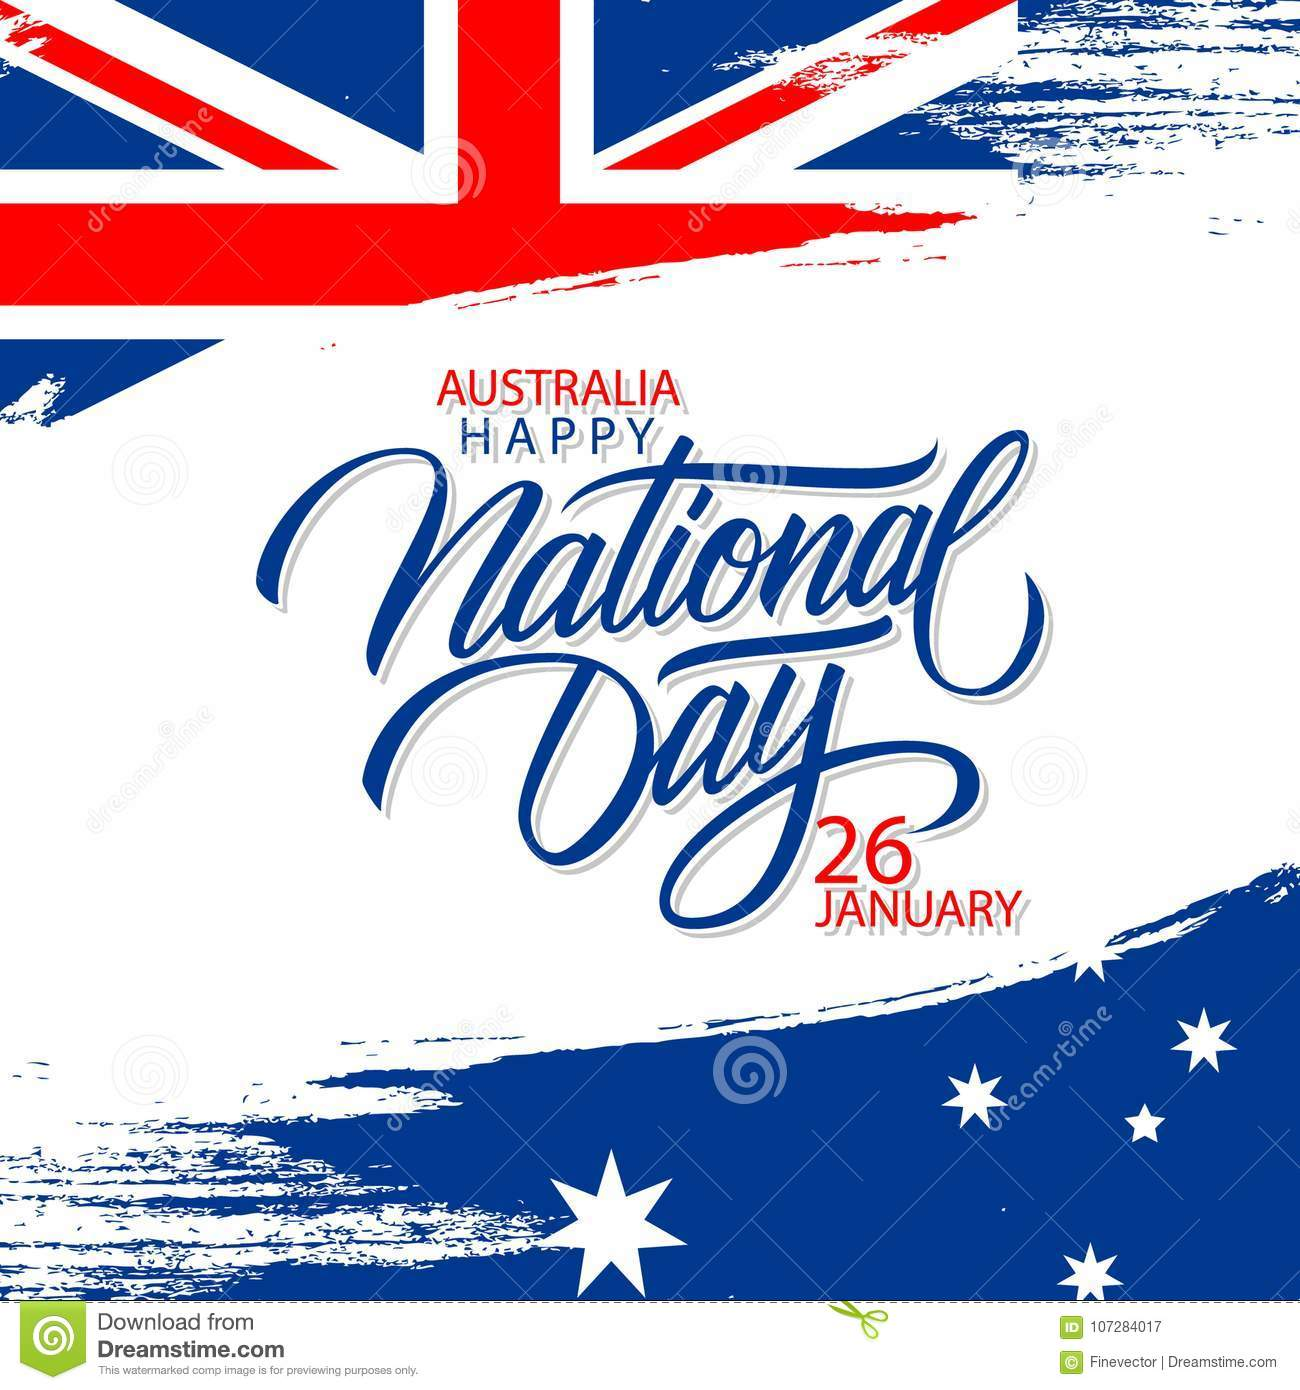 Happy australia national day january 26 greeting card with hand download comp m4hsunfo